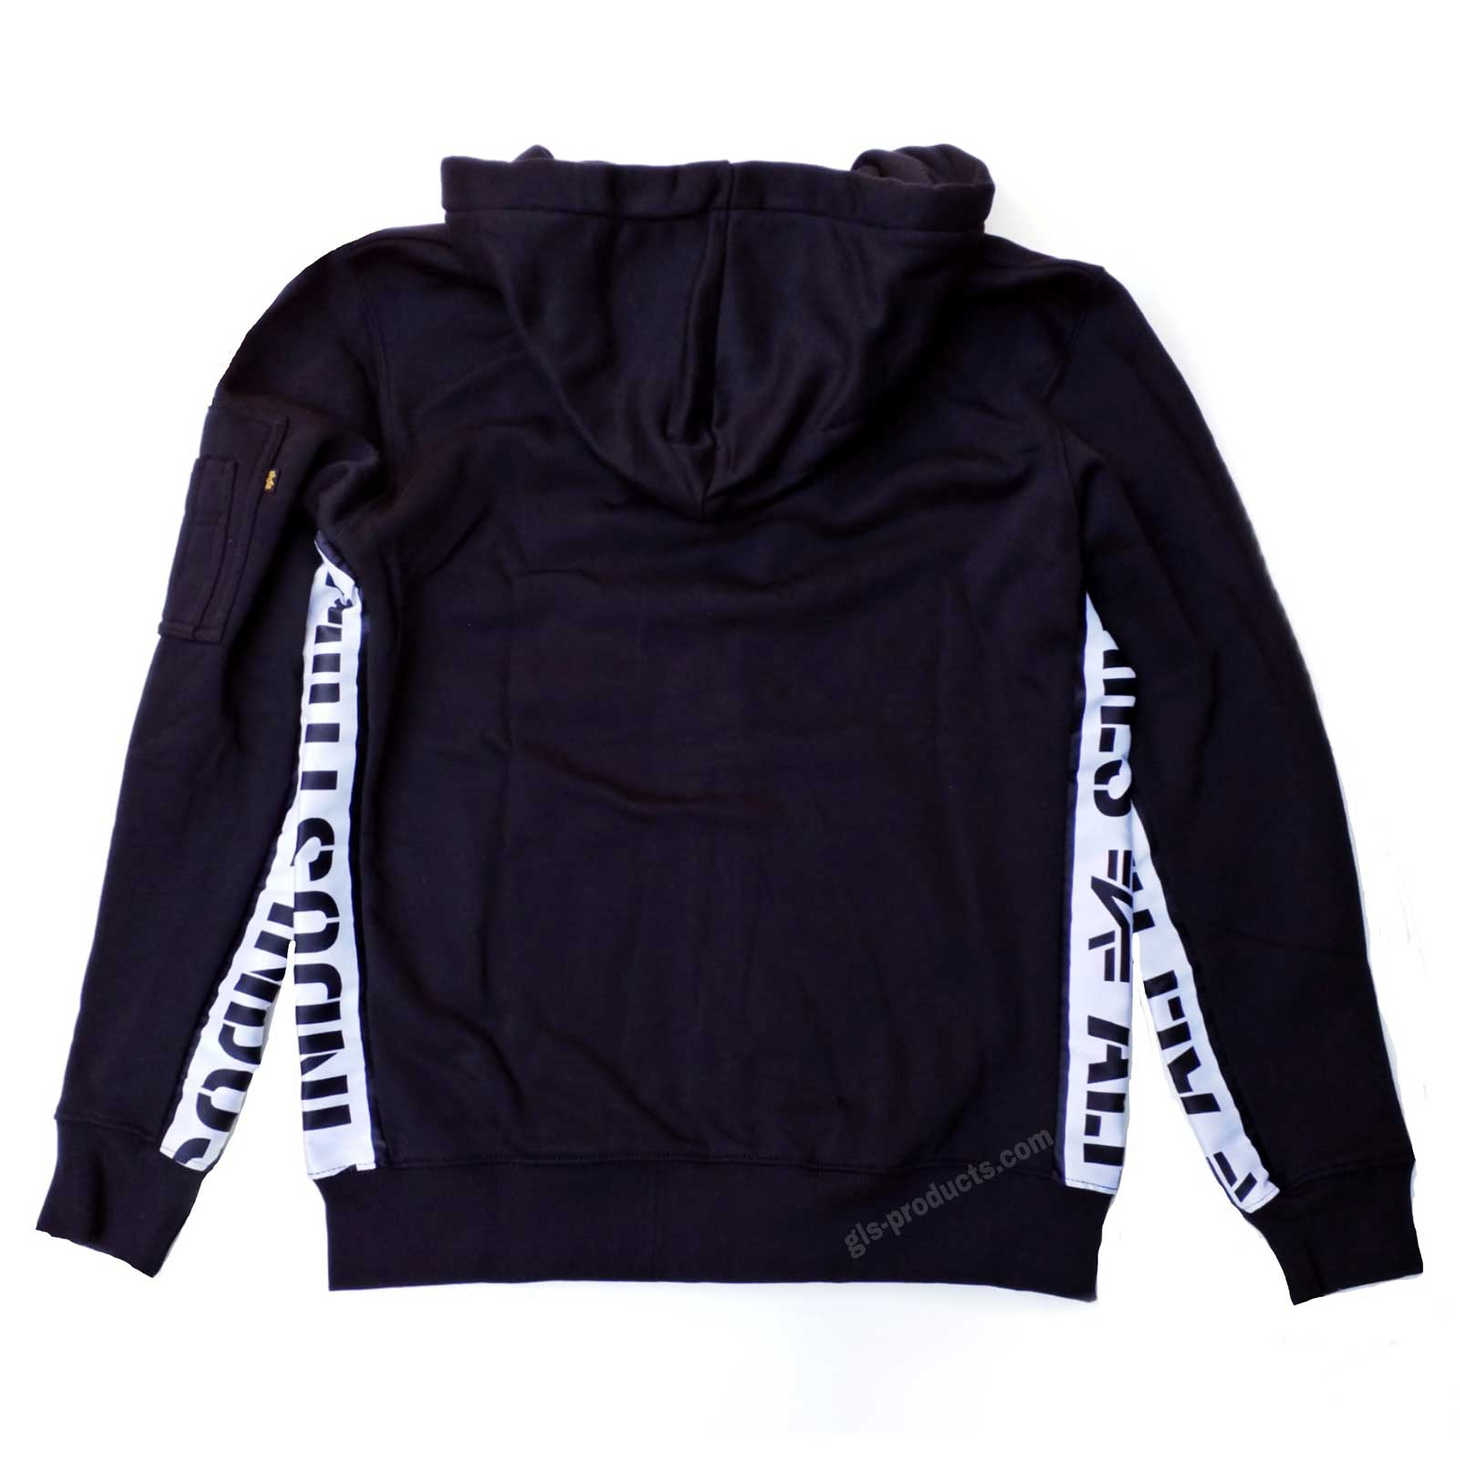 Details about Alpha Industries AI Inlay Zip Hoody 198361 Sweat Jacket 80% Cotton 20% Polyester